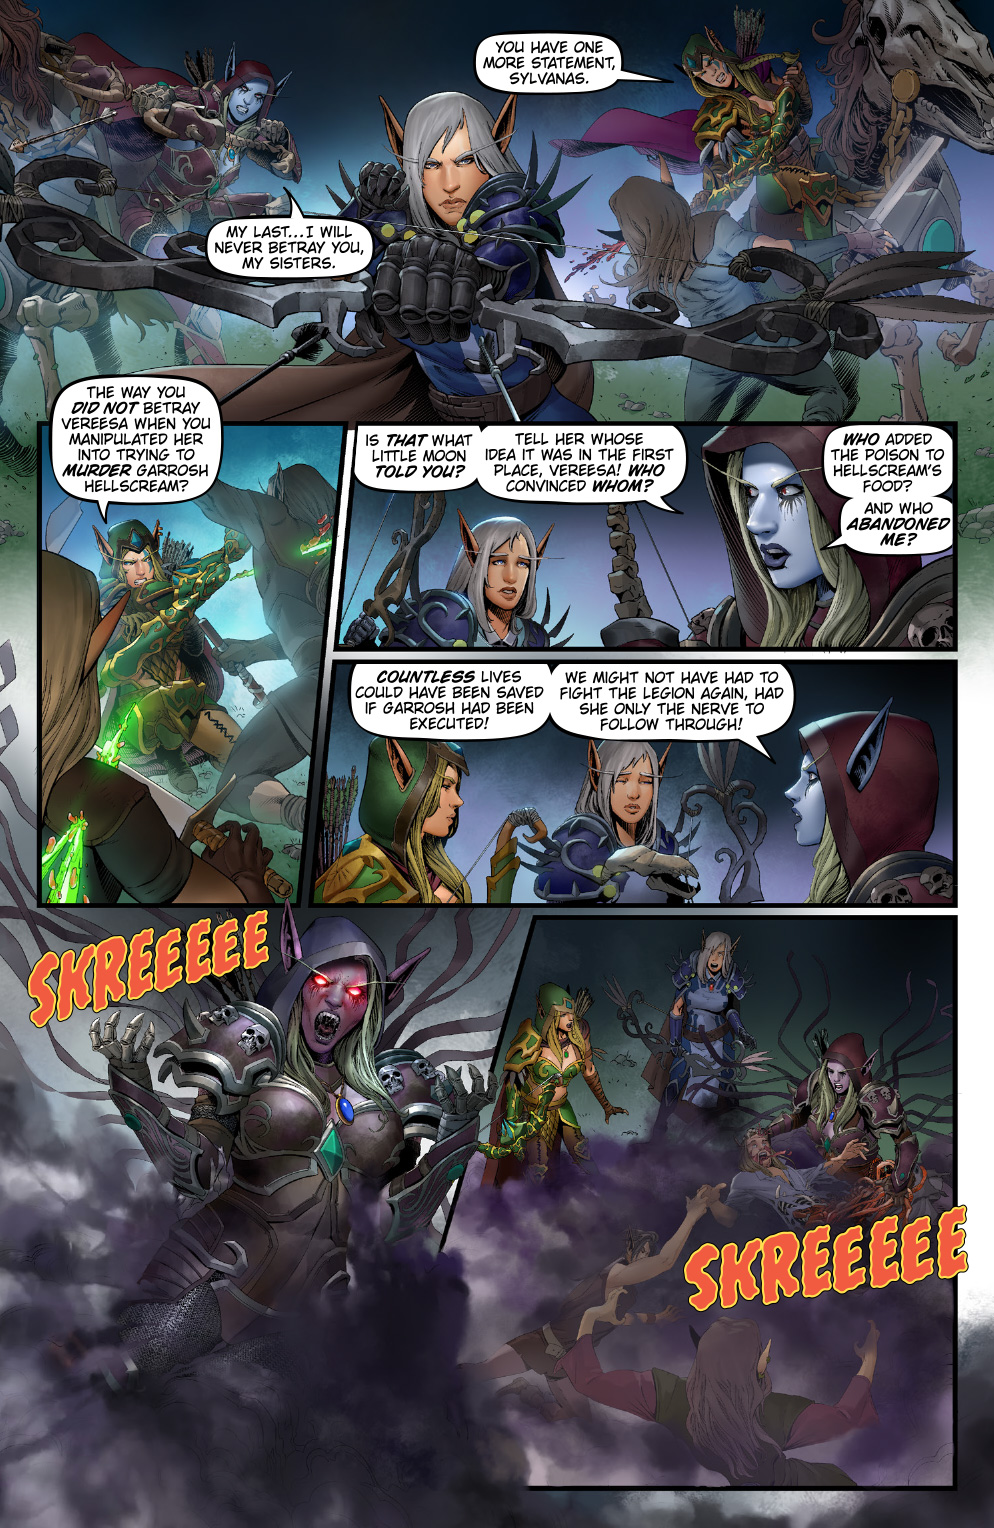 Three Sisters Battle For Azeroth Comics Issue 3 Mmo Champion